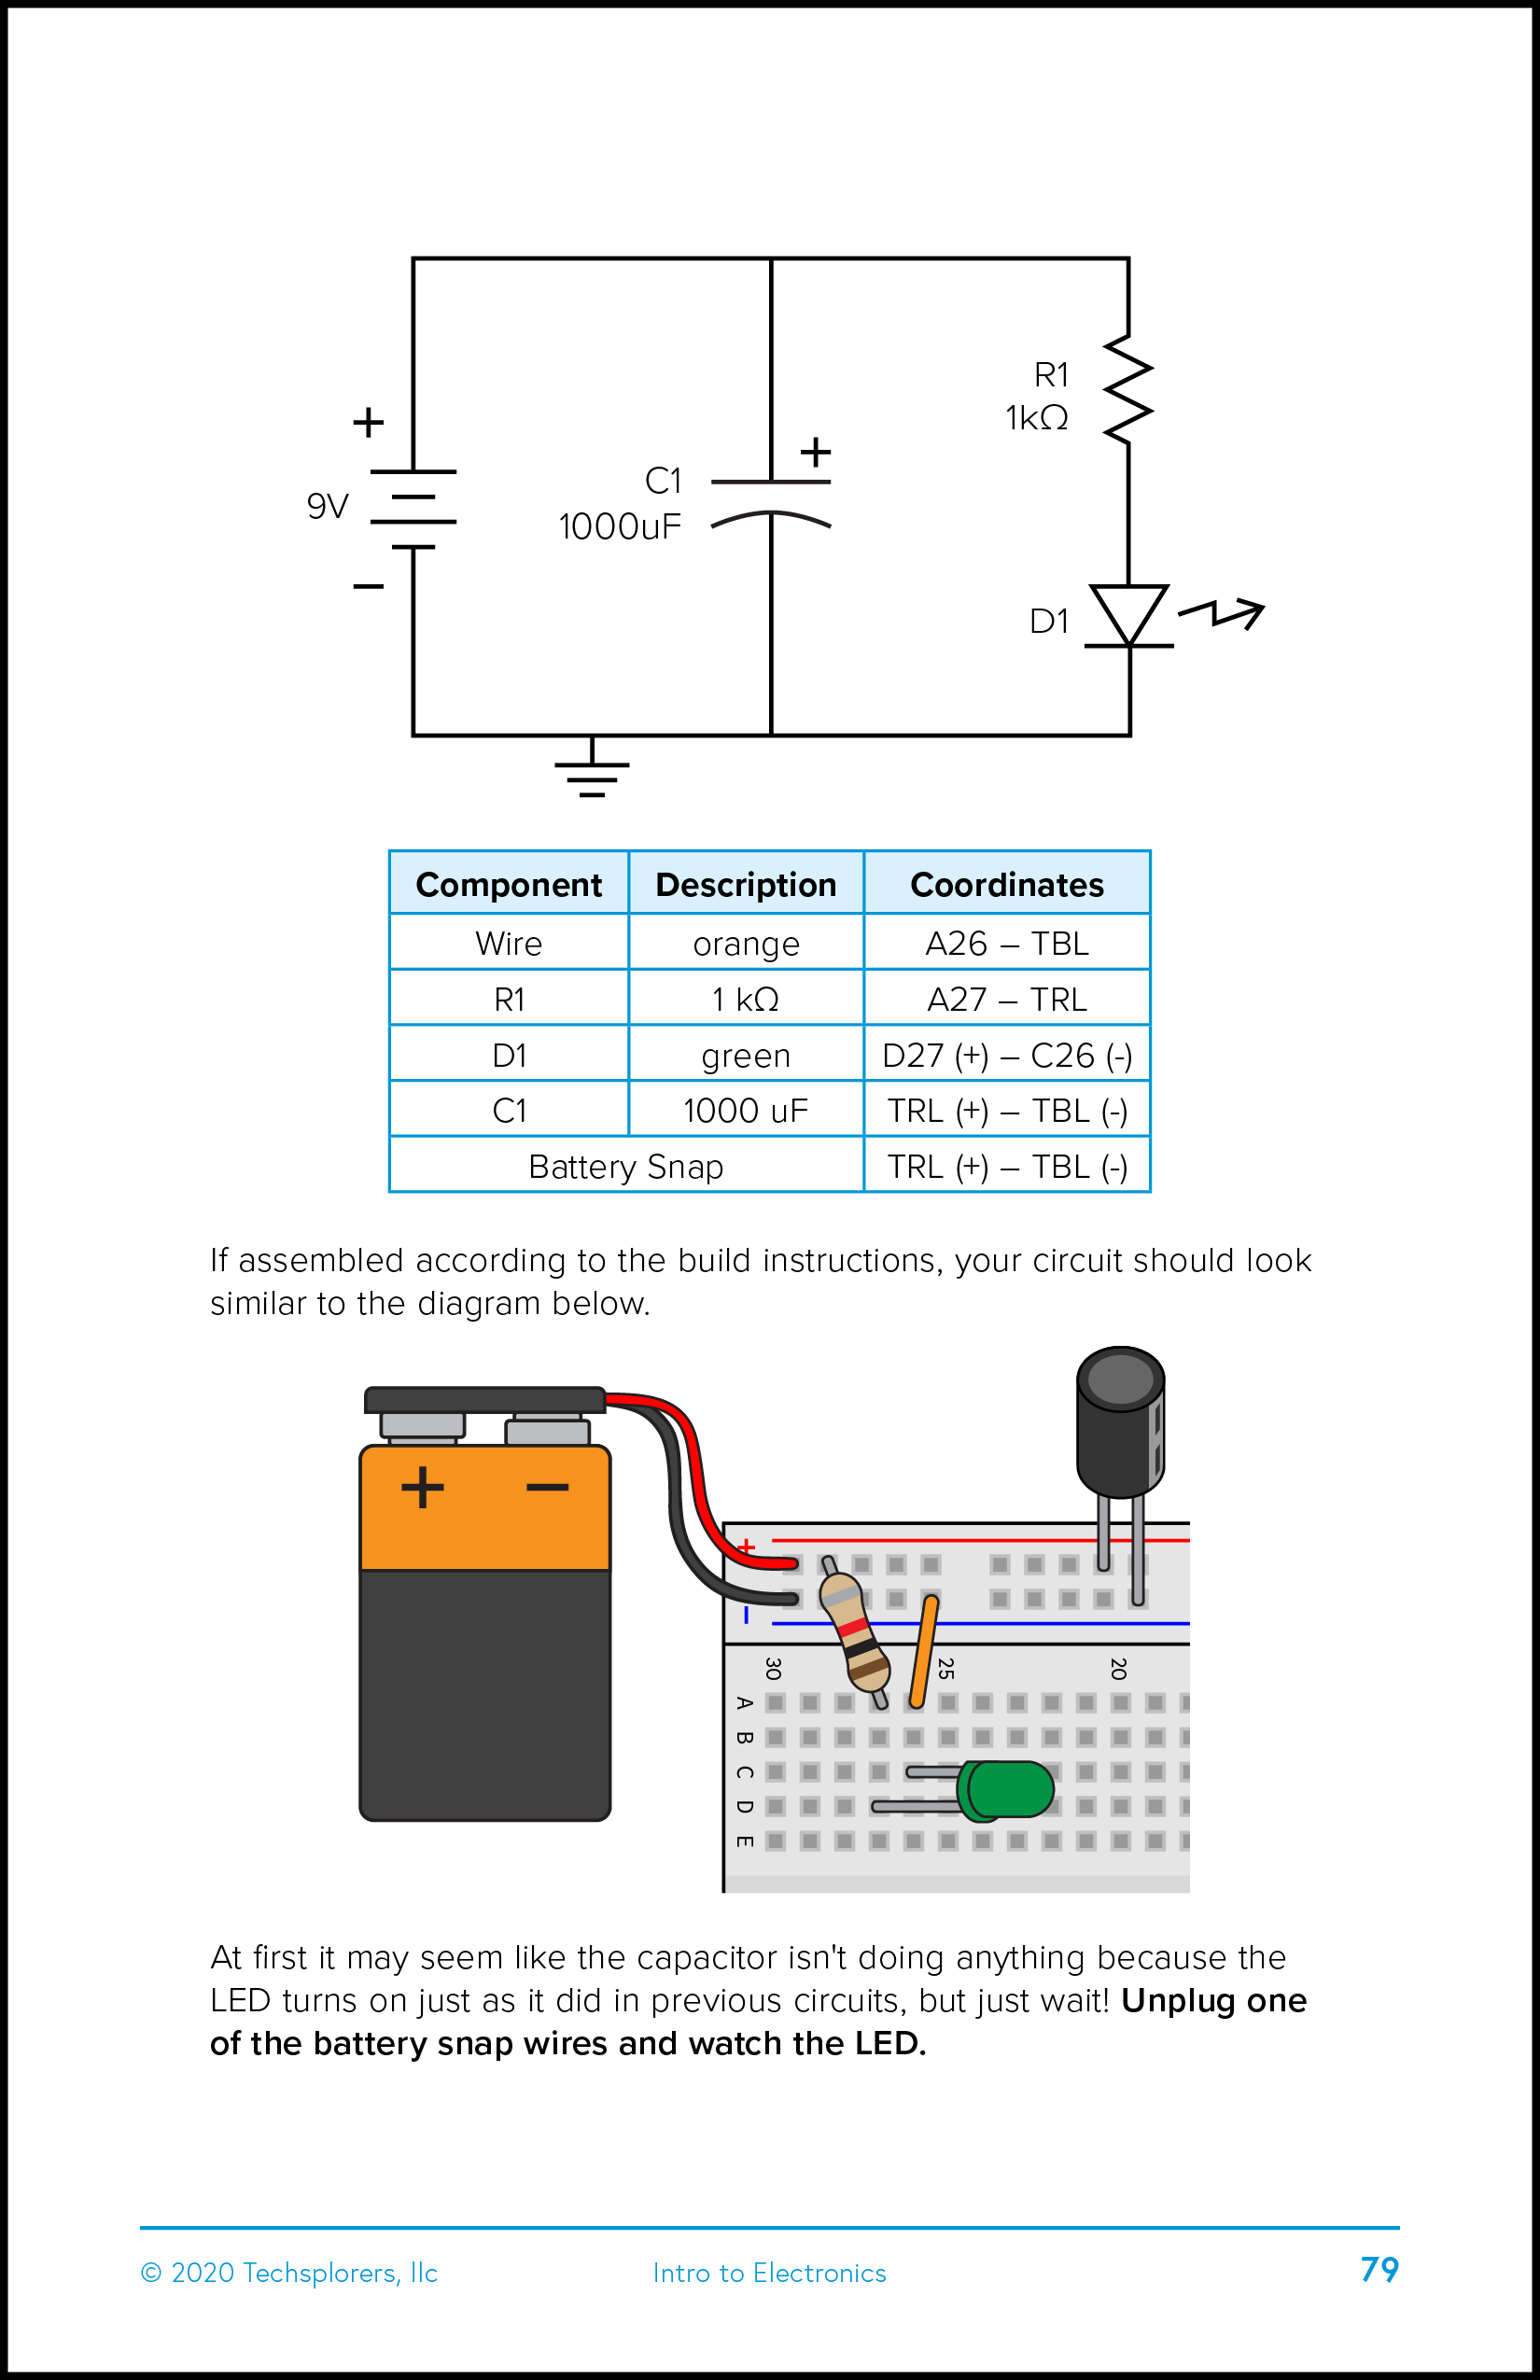 Intro to Electronics Page 79